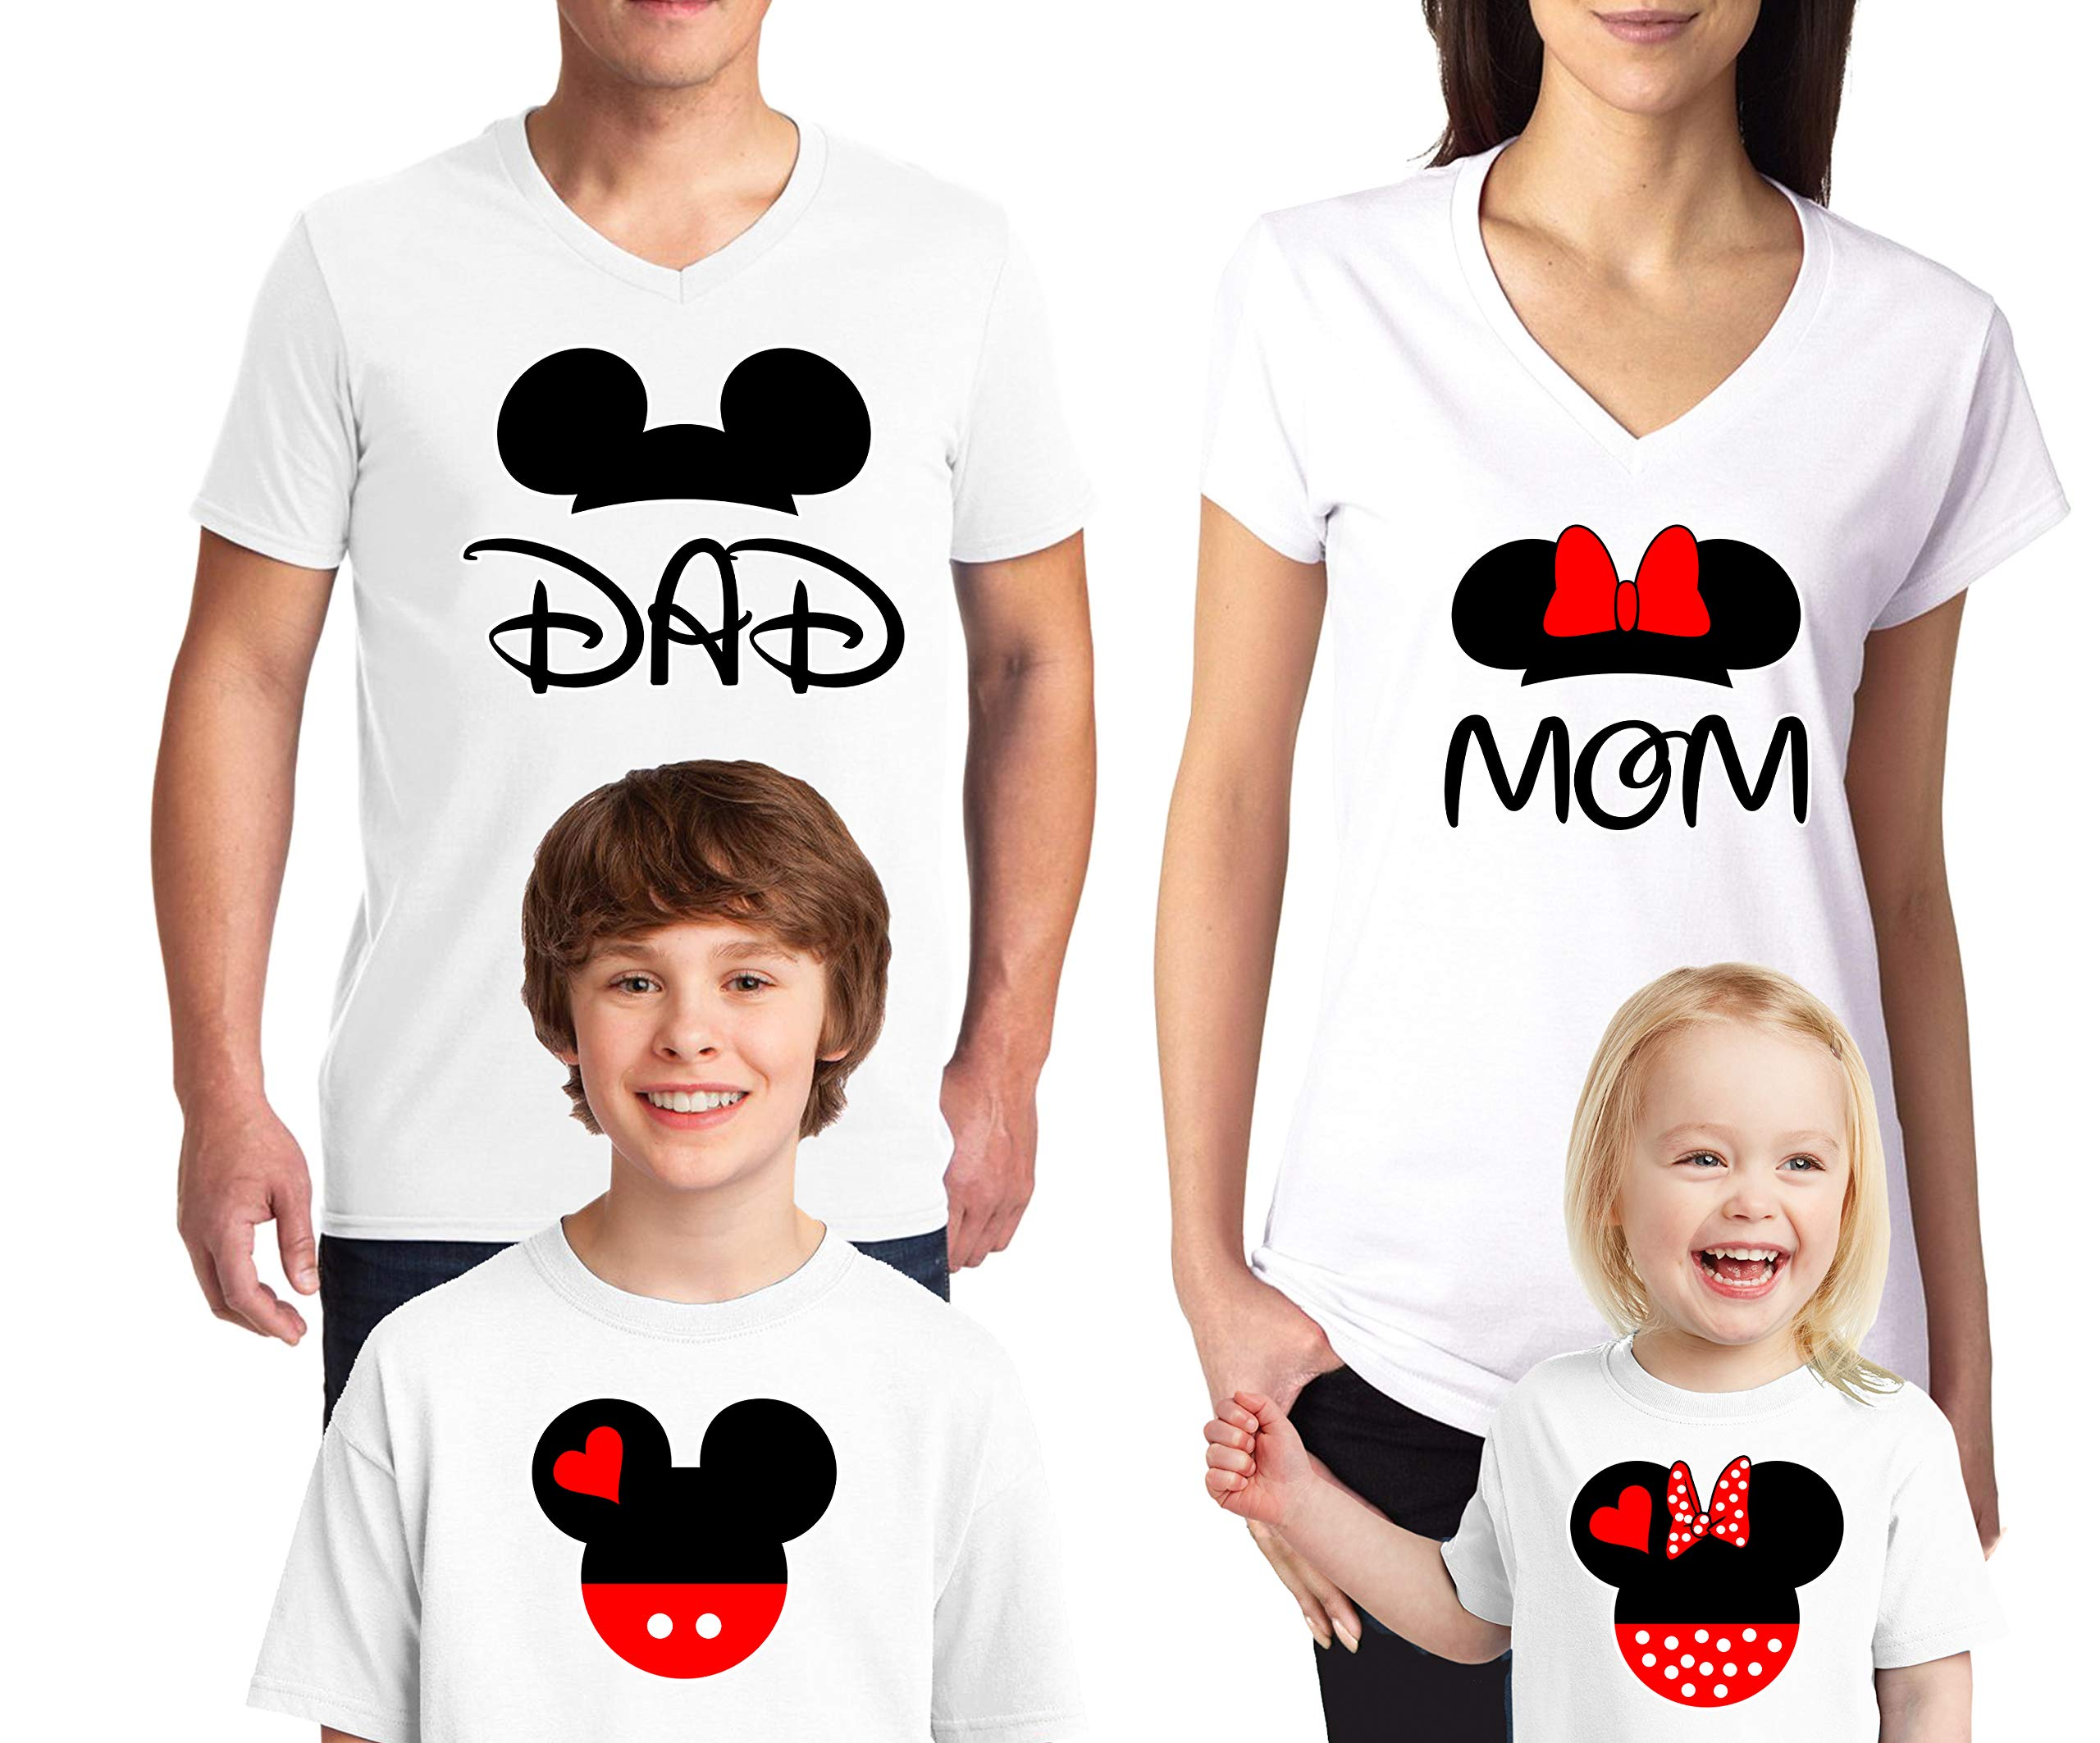 fd4224625608 Natural Underwear Family Trip #2 Mickey Mouse Minnie Mouse Ears Cotton Mom  Dad Family T Shirts Family Vacations 2019 V Neck T Shirts for Boys Girls  Women ...